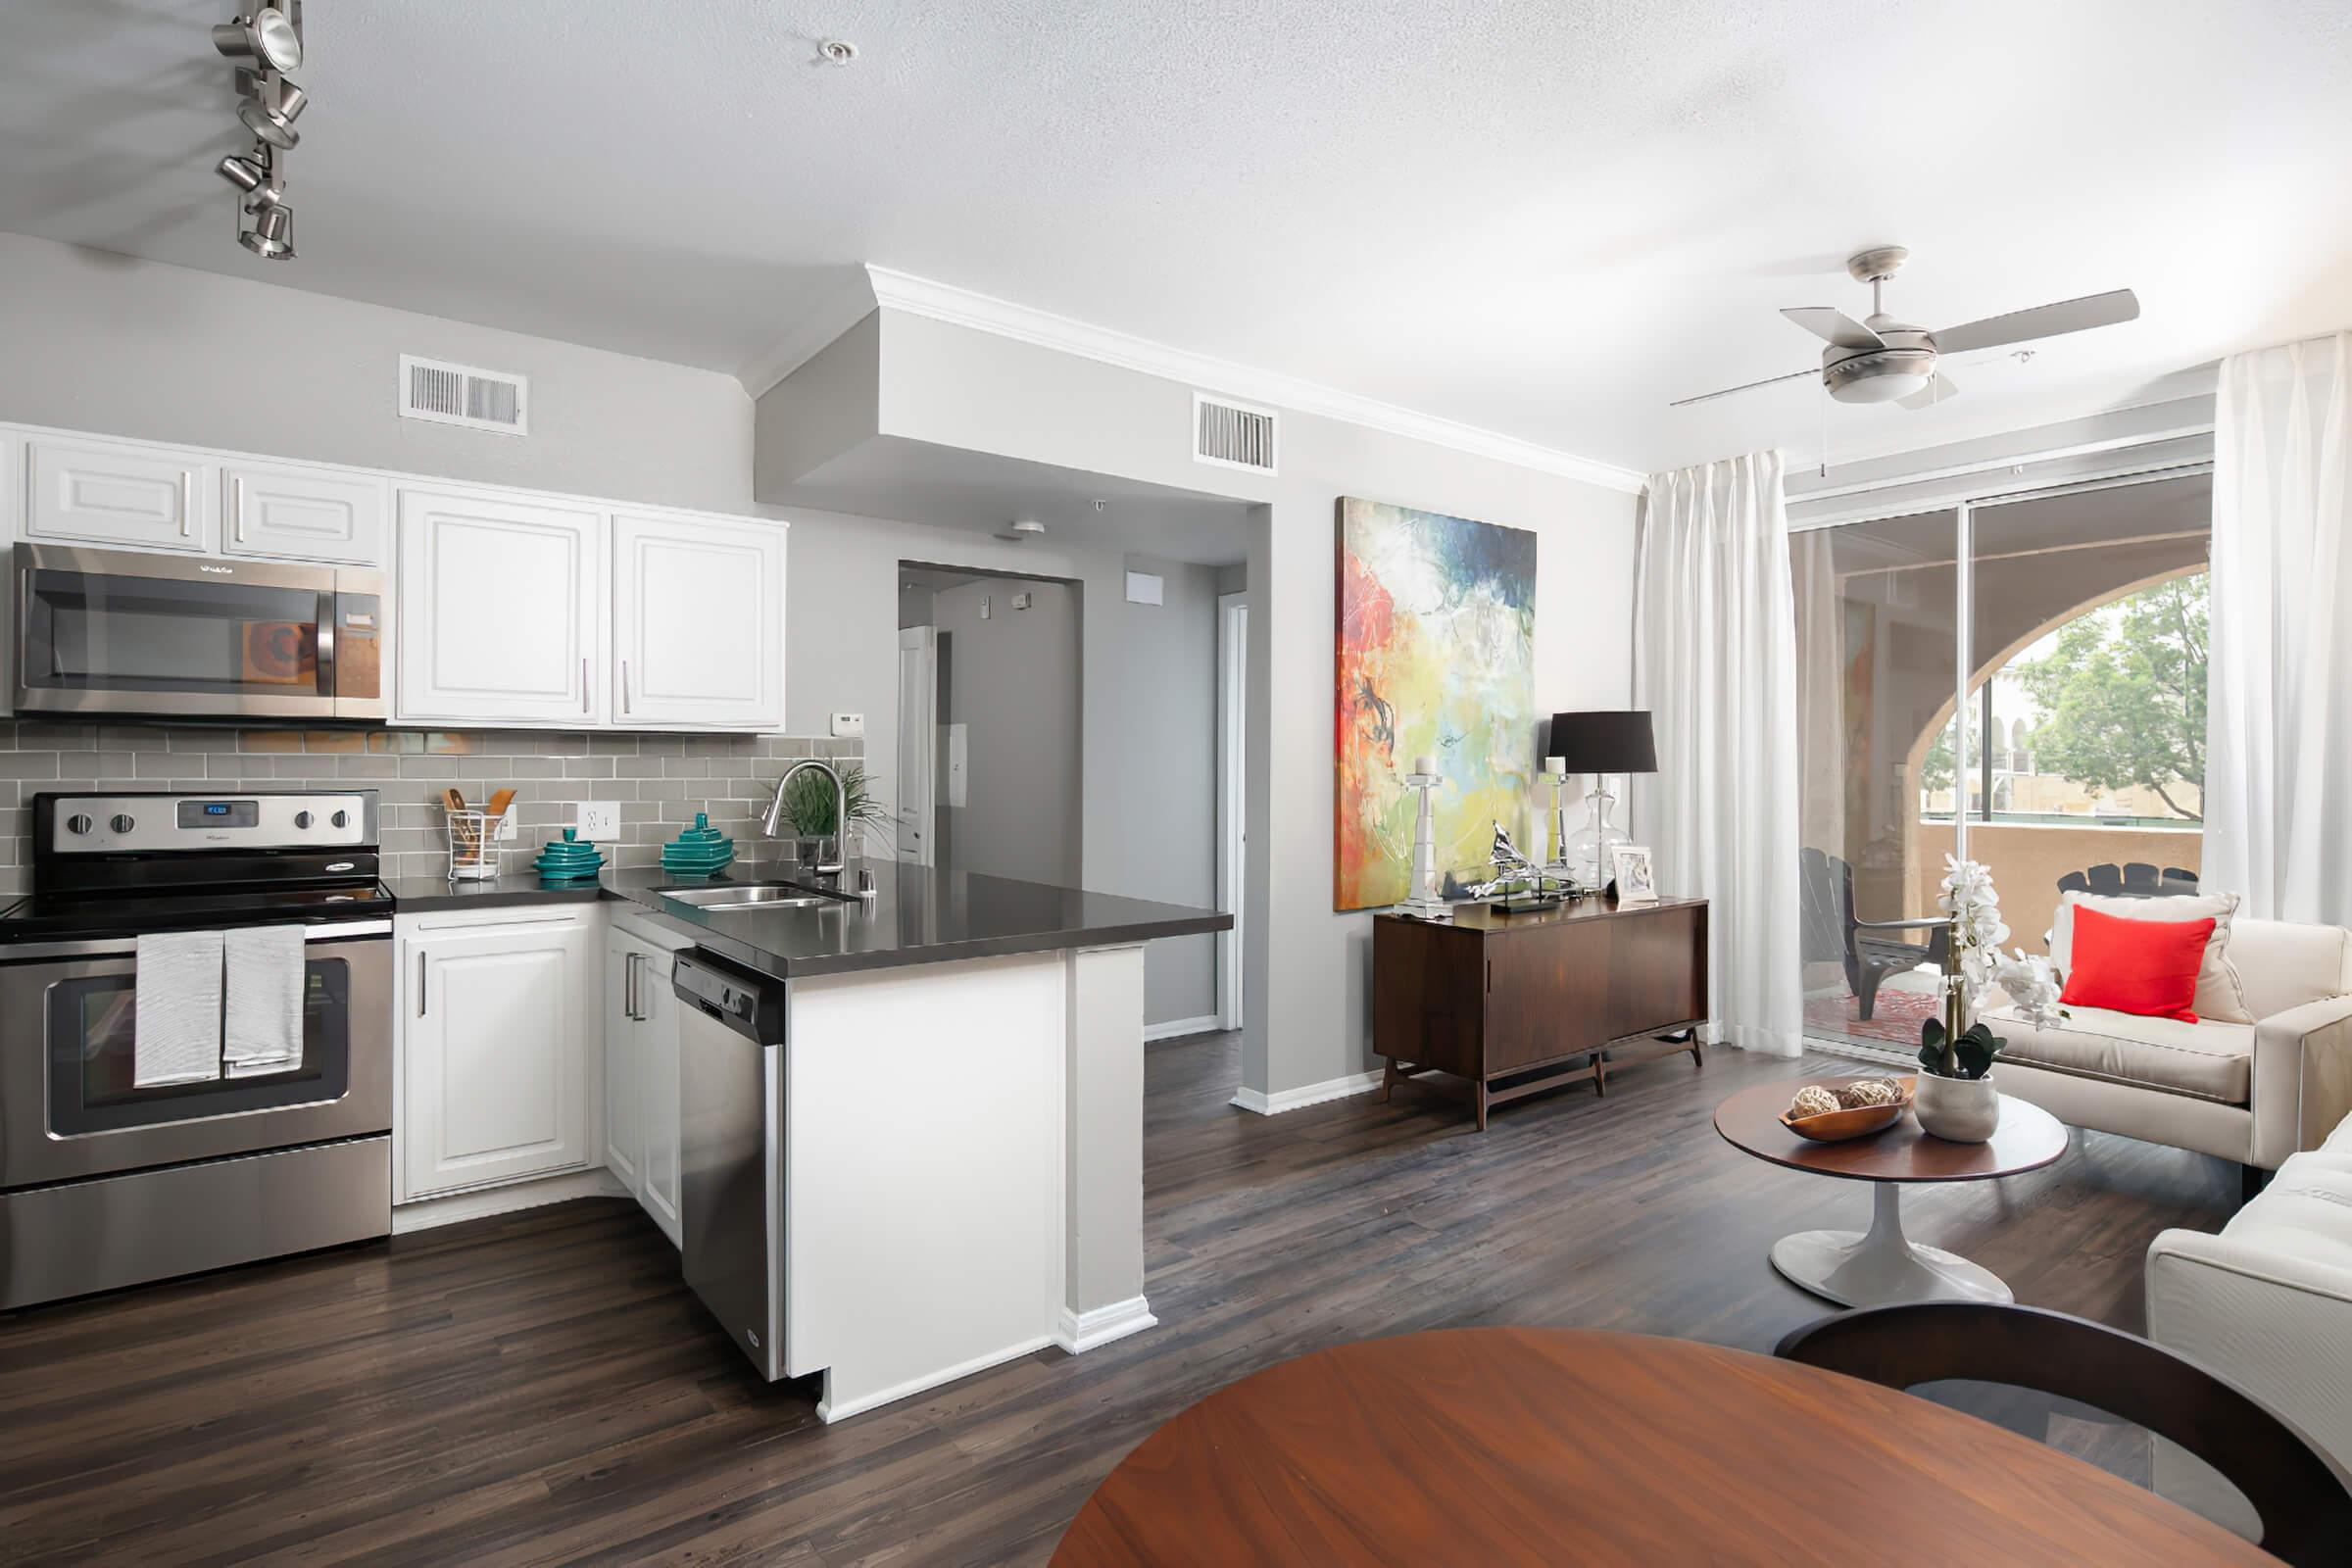 Kitchen and living room with wooden floors